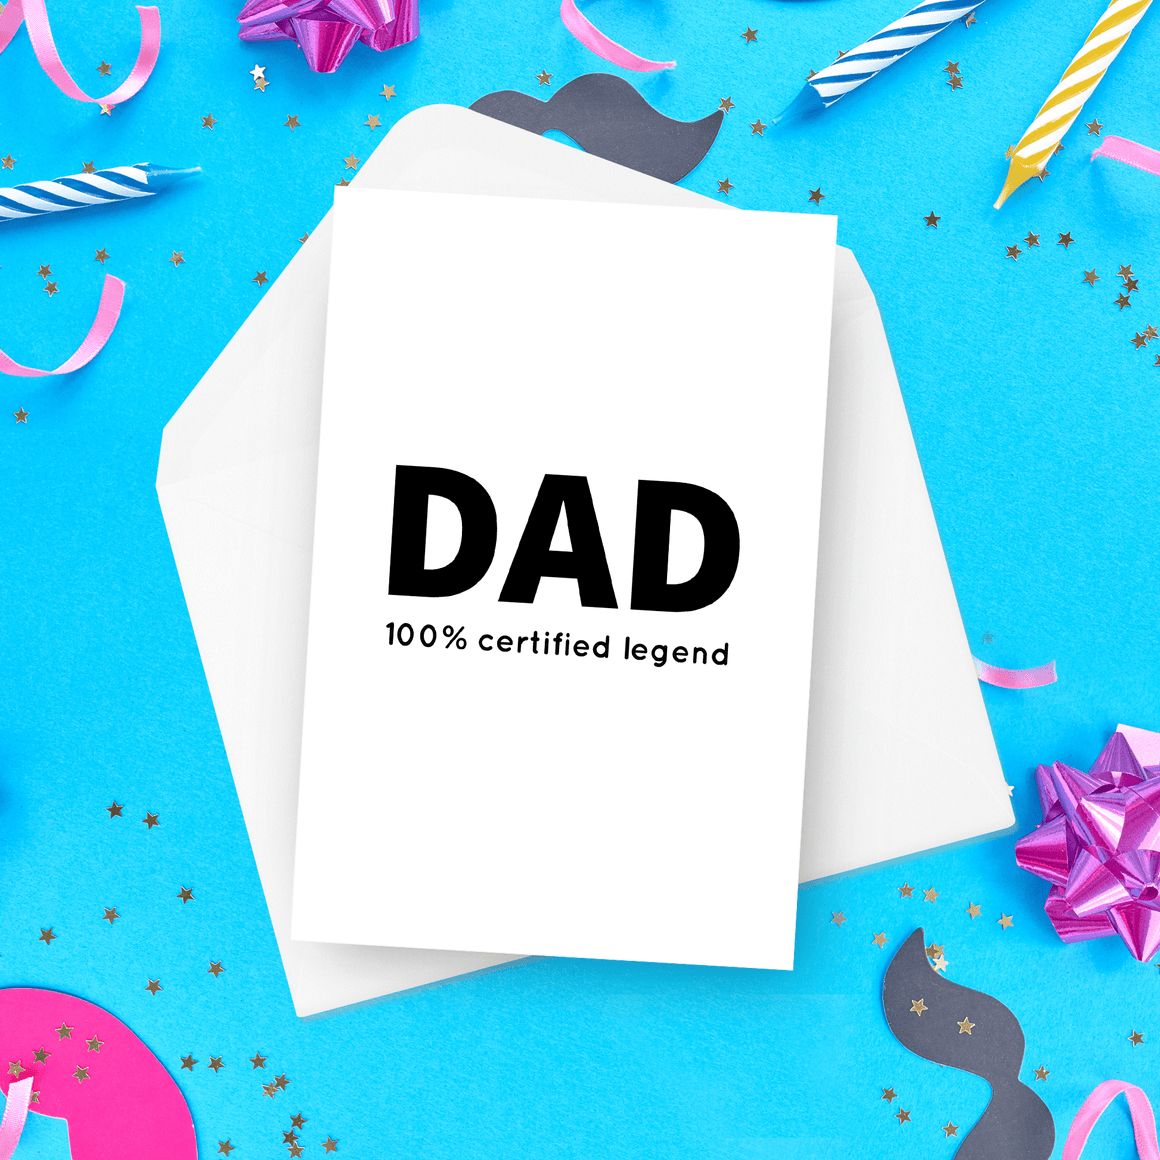 Dad 100% Certified Legend Father's Day Card